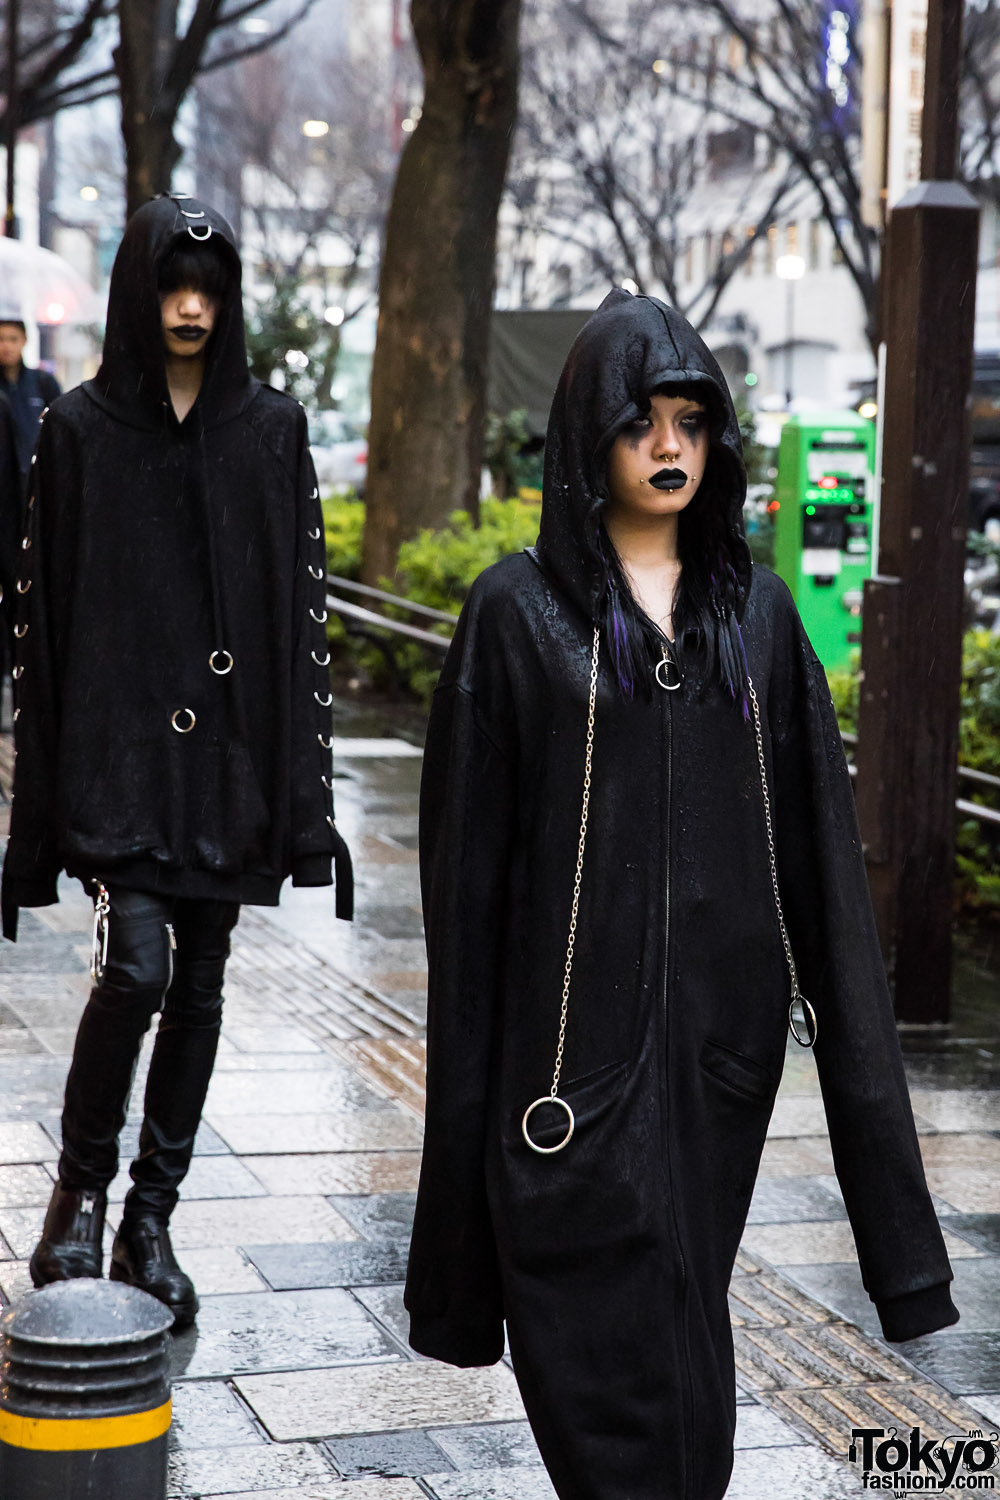 Japanese fashion clothes online